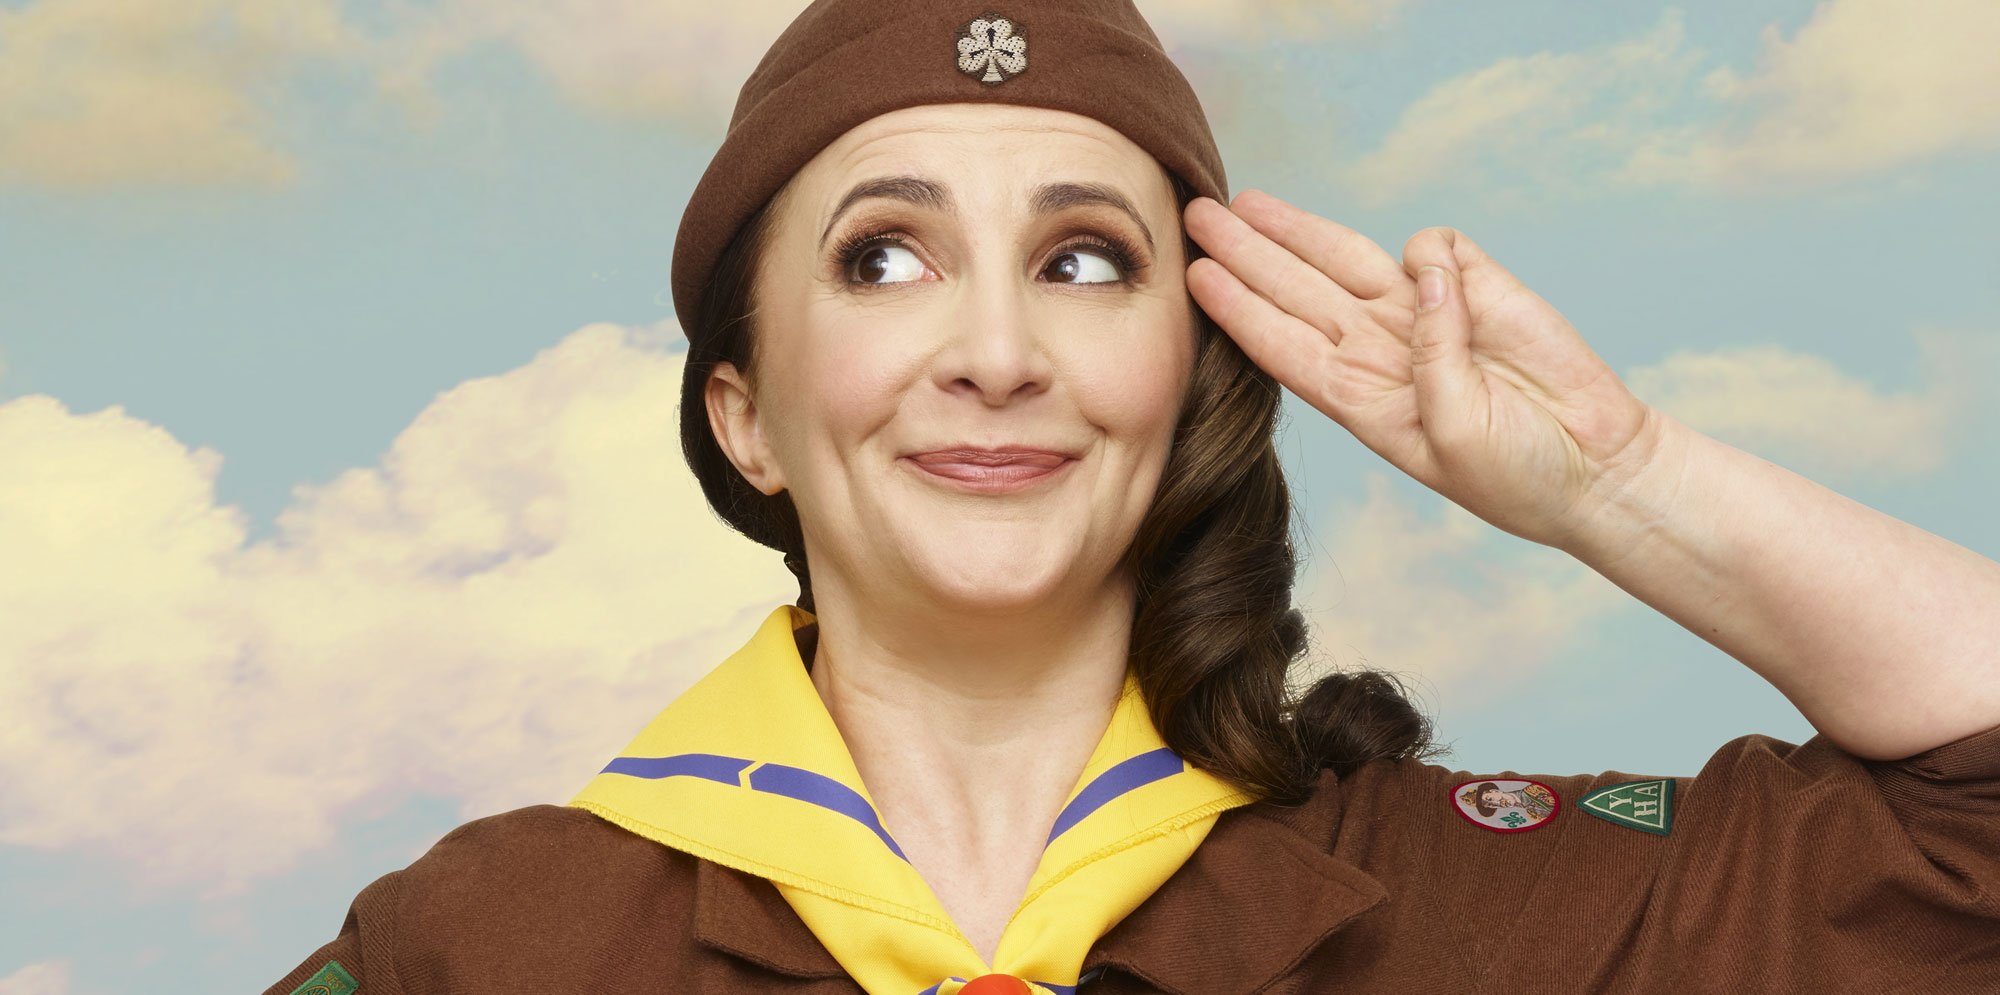 Lucy Porter wearing a brown scout's uniform with a hat and yellow neck cloth. She salutes with a mischievous face.